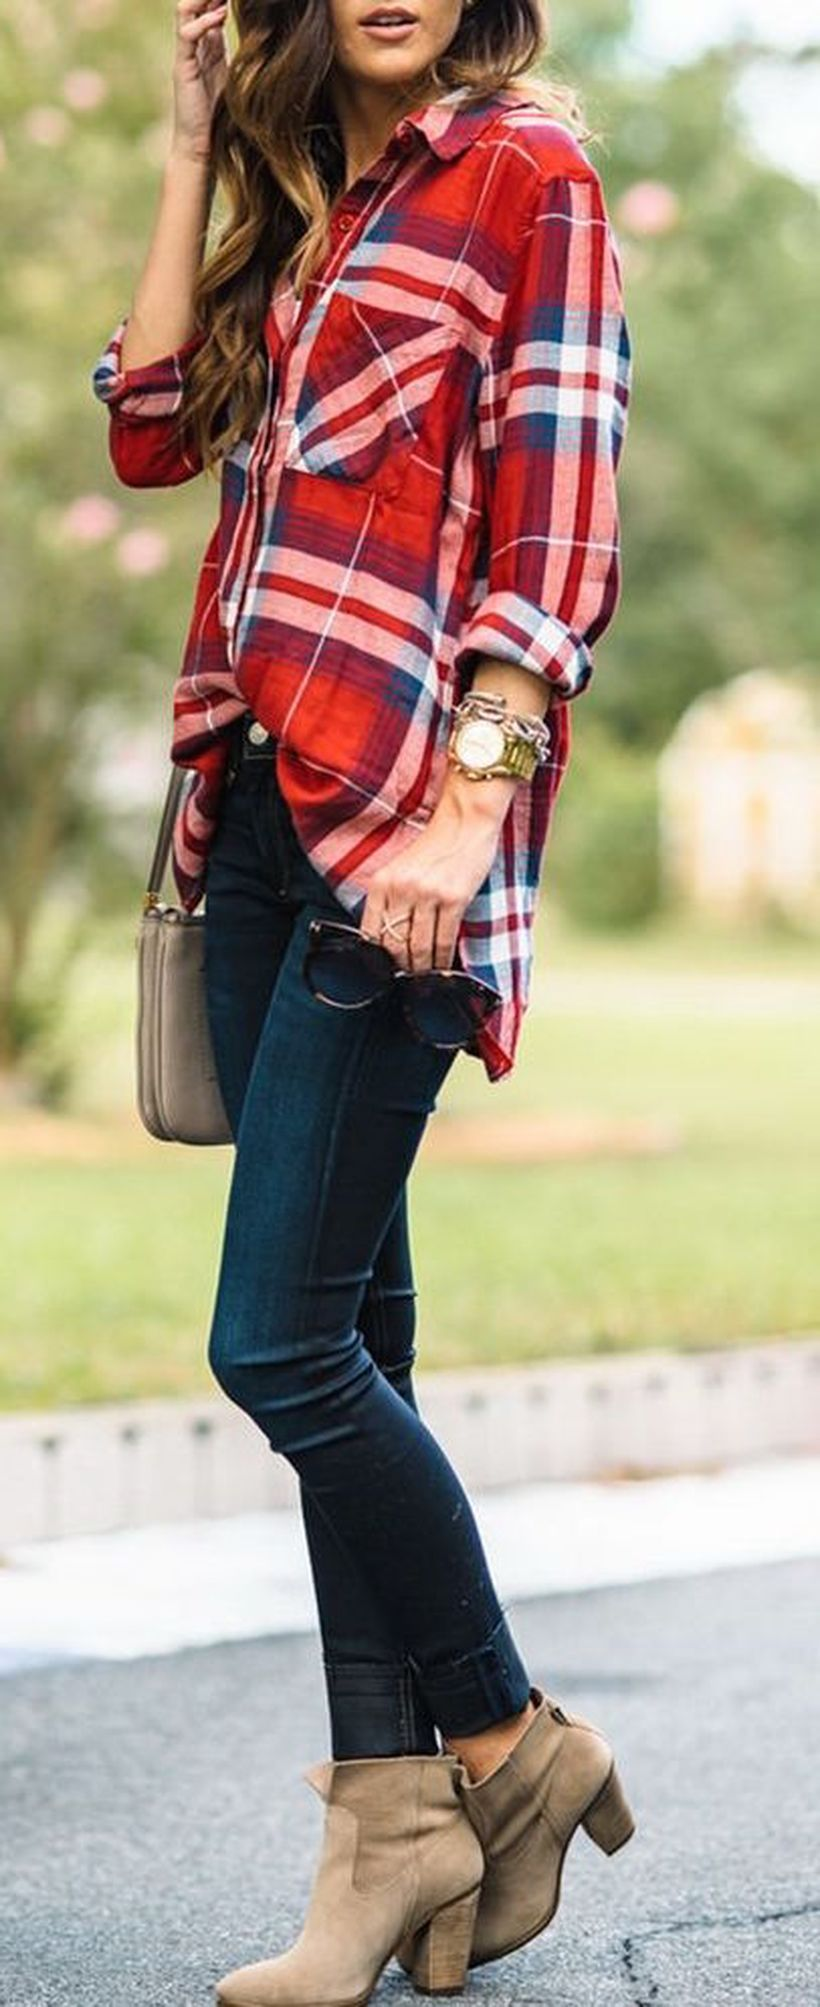 Endeavor flannel shirt  Casual fall fashions trend inspirations    Casual fall